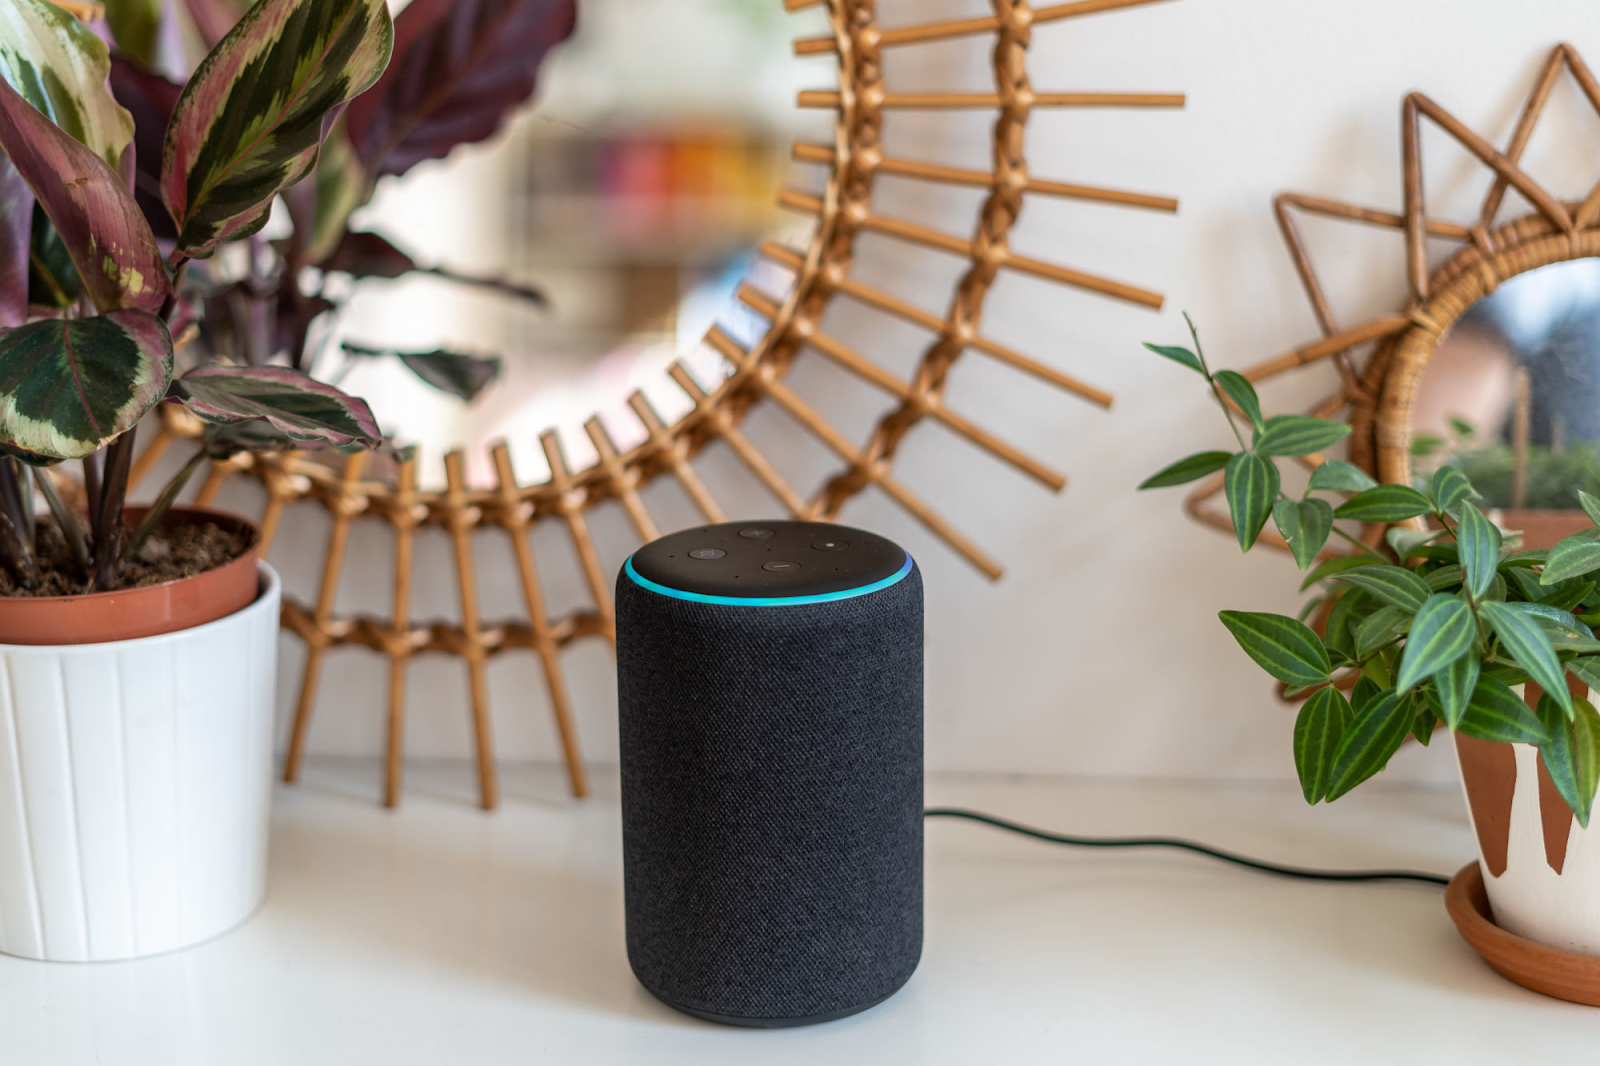 Beeb: BBC's Voice Assistant 1